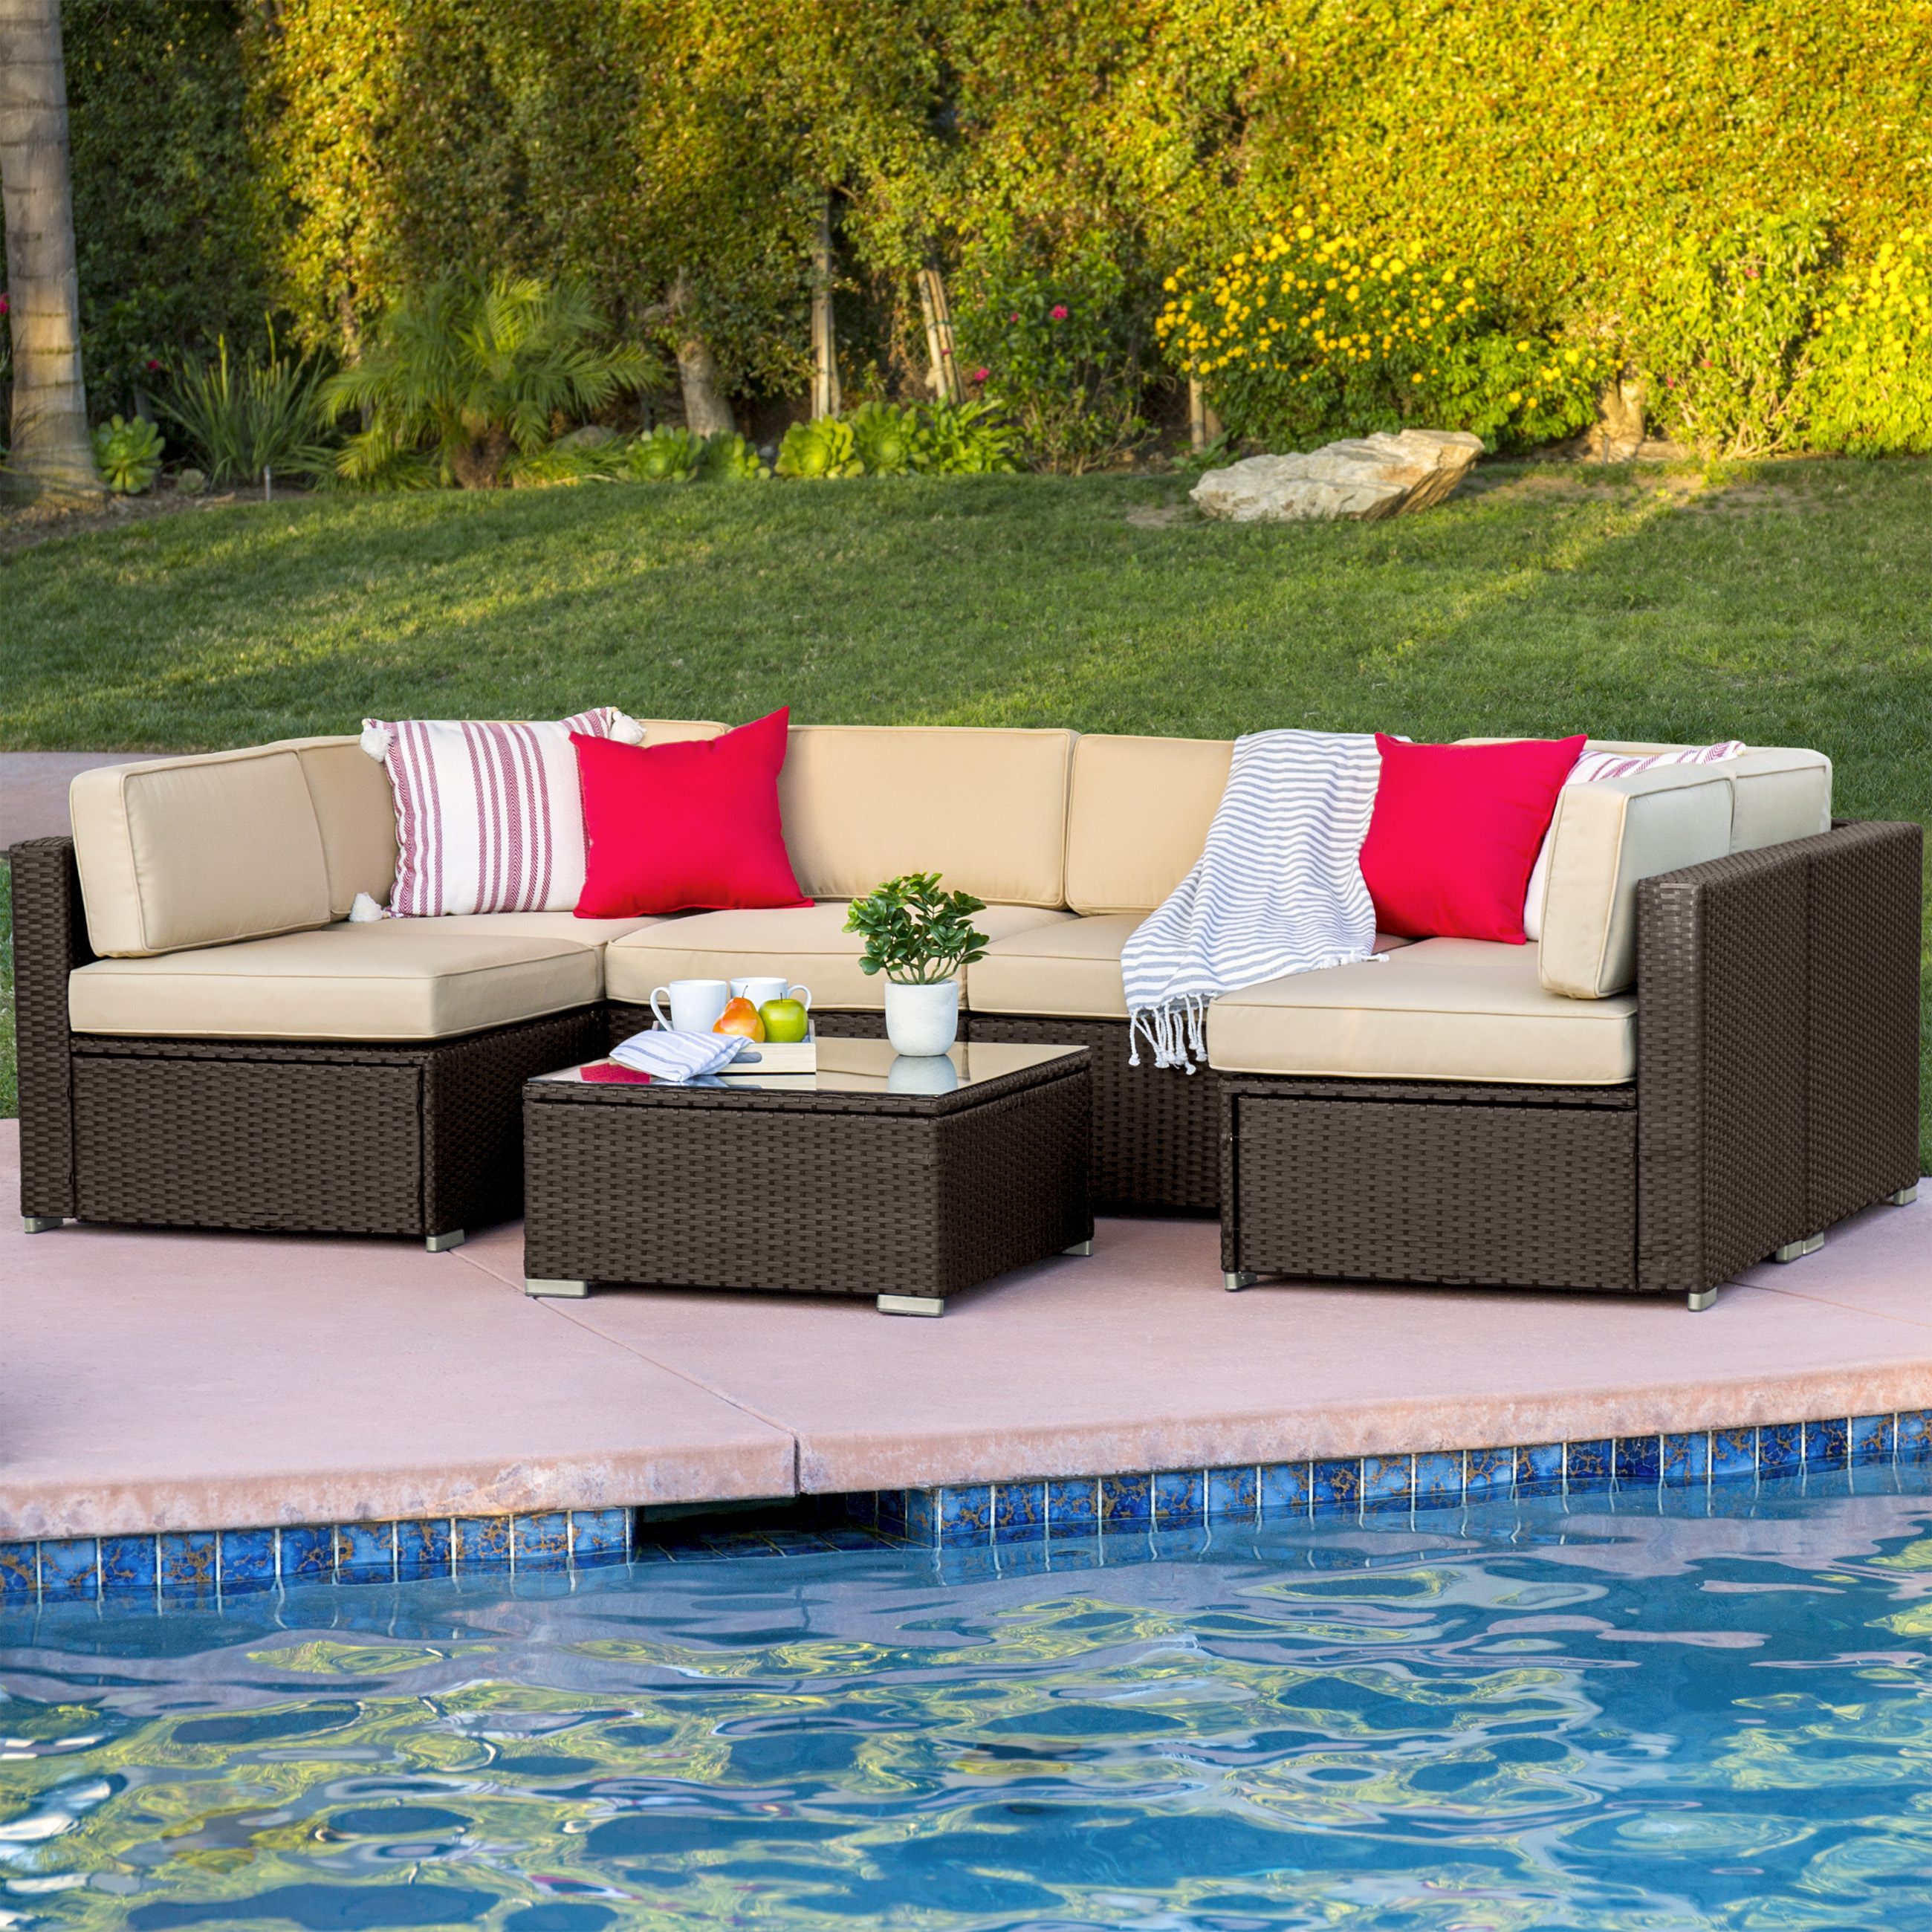 Best Choice Products 7pc Outdoor Patio Garden Furniture Wicker Rattan Sofa Set Sectional Brown